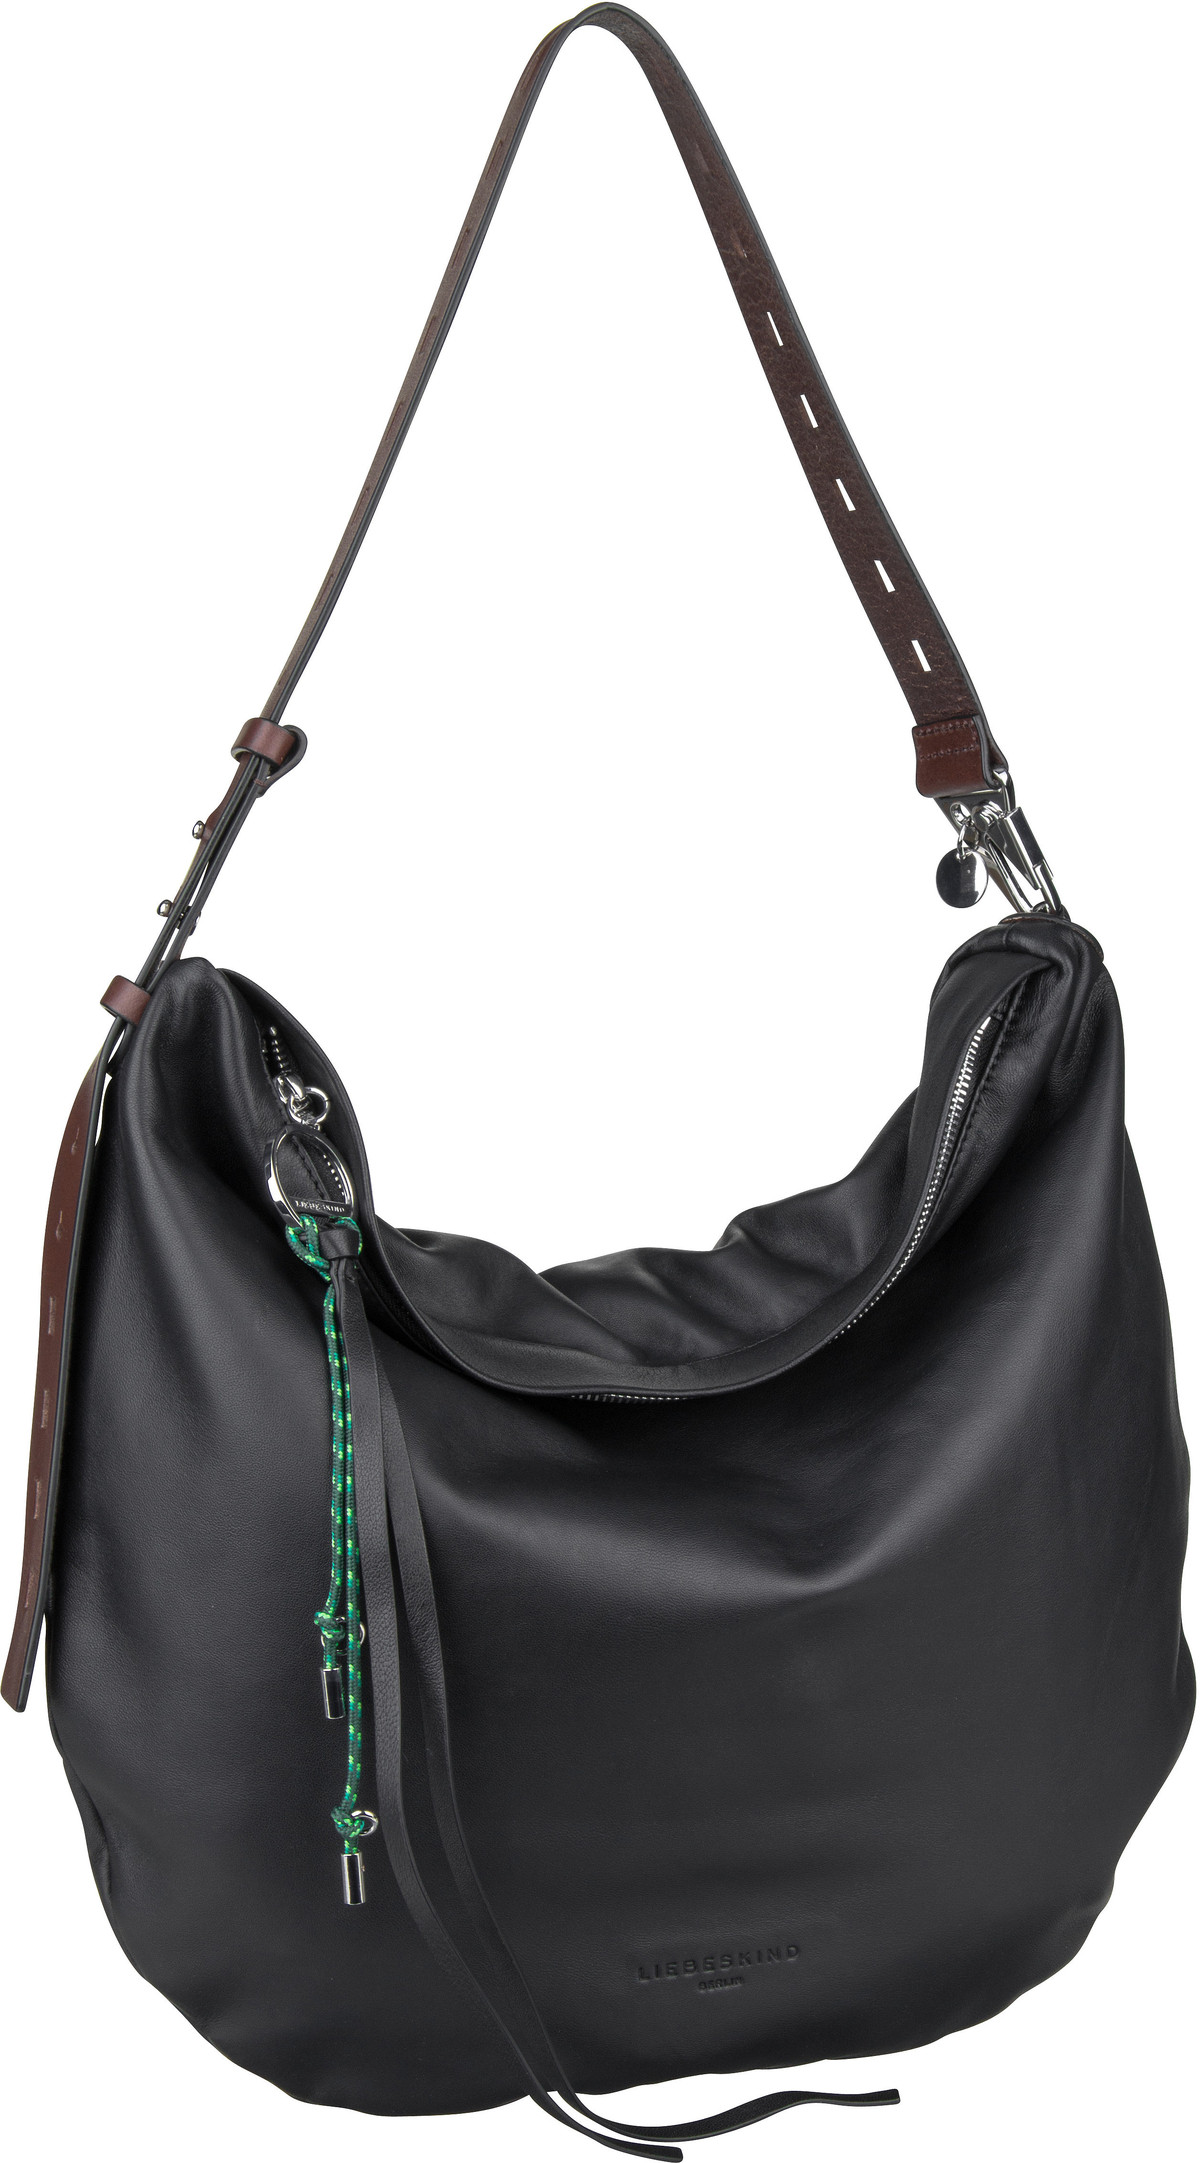 Berlin Handtasche Dive Hobo M Black